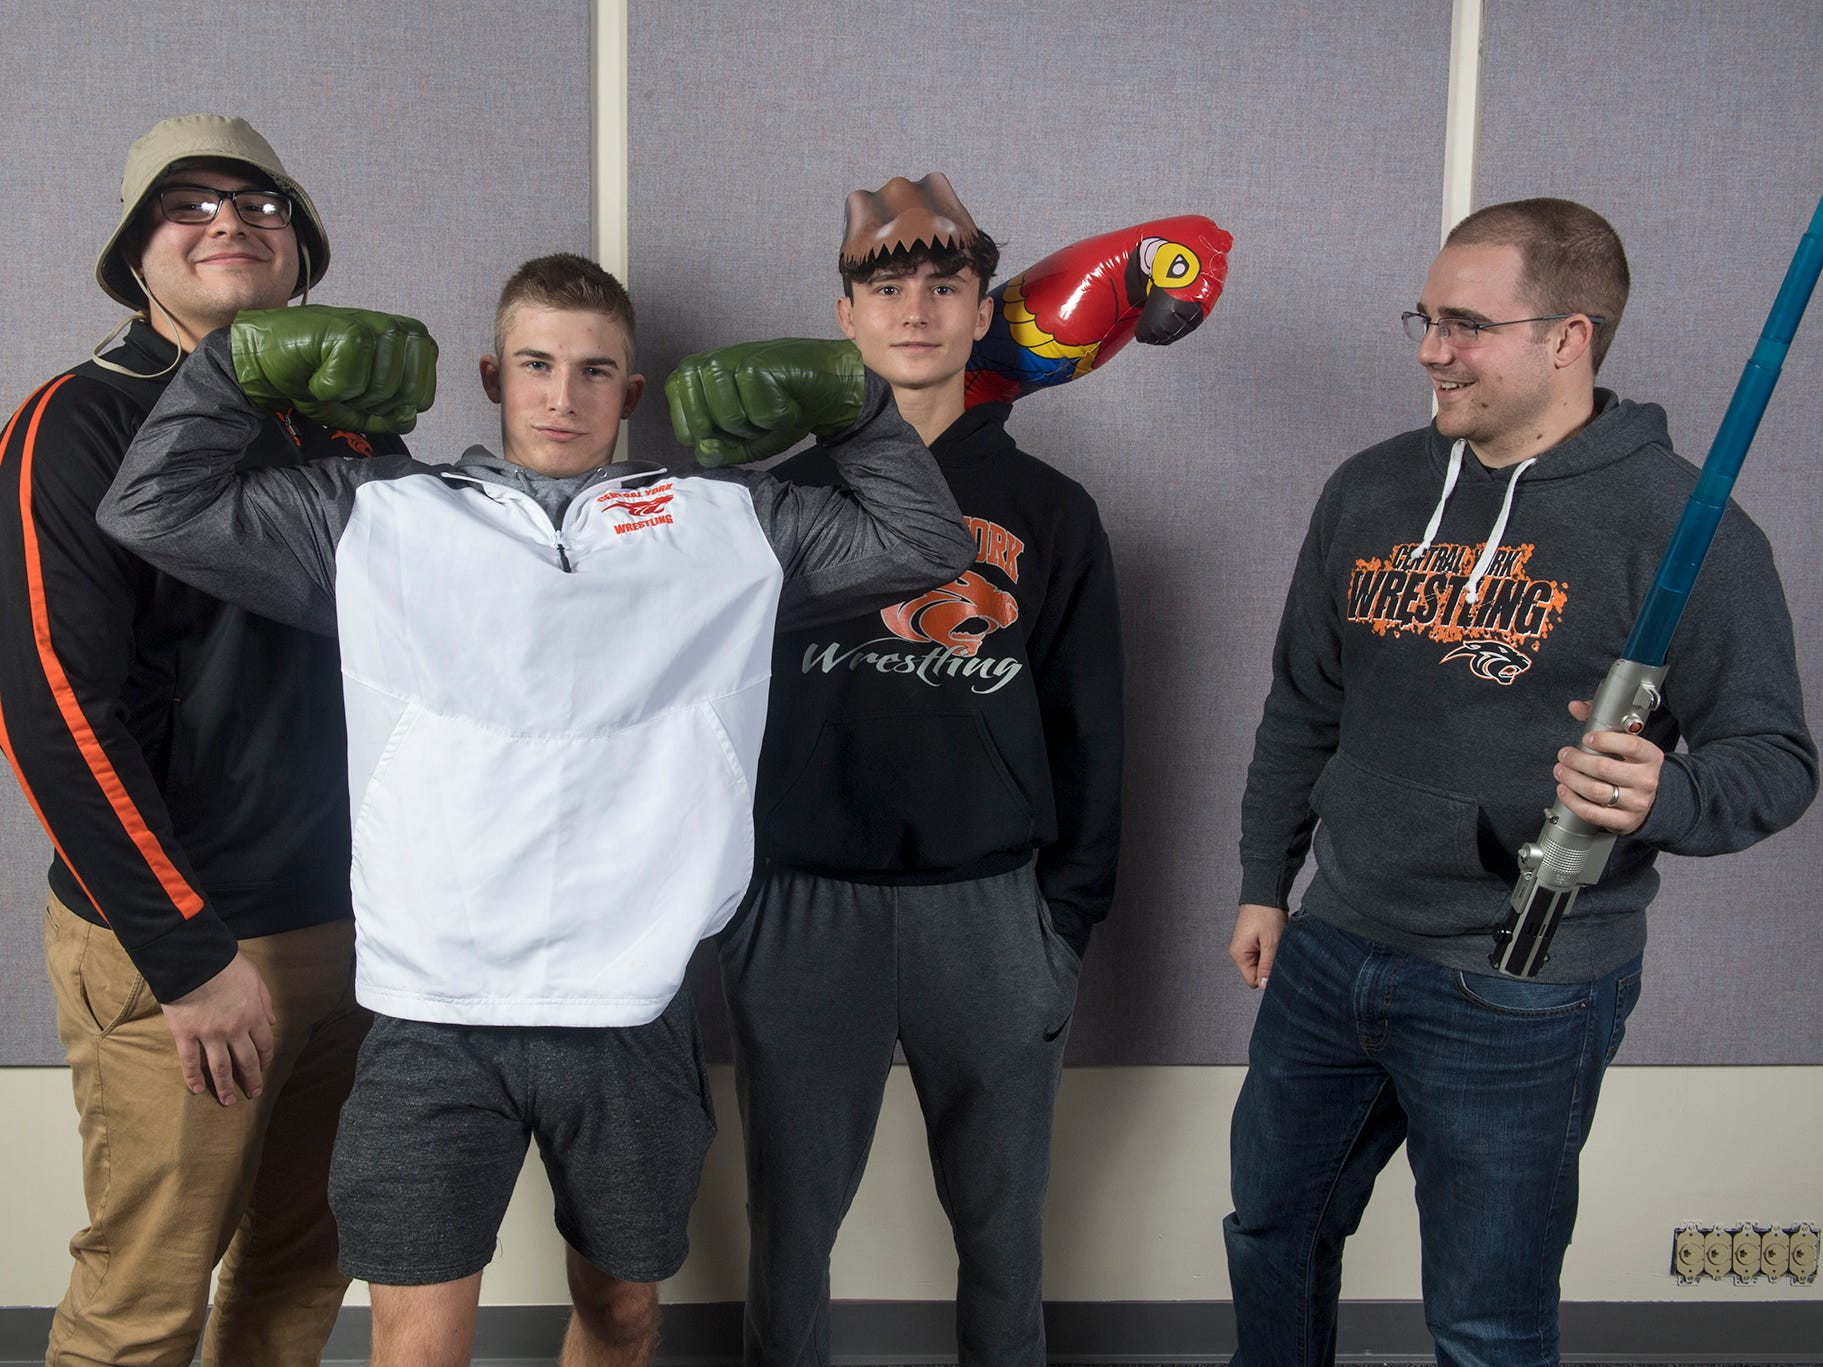 From the left, Michael Wolfgram, Logan Paluch, Mason Myers, and Seth Beitz, of the Central York wrestling team, pose during the 2018-19 GameTimePa YAIAA Winter Media Day Sunday November 11, 2018.